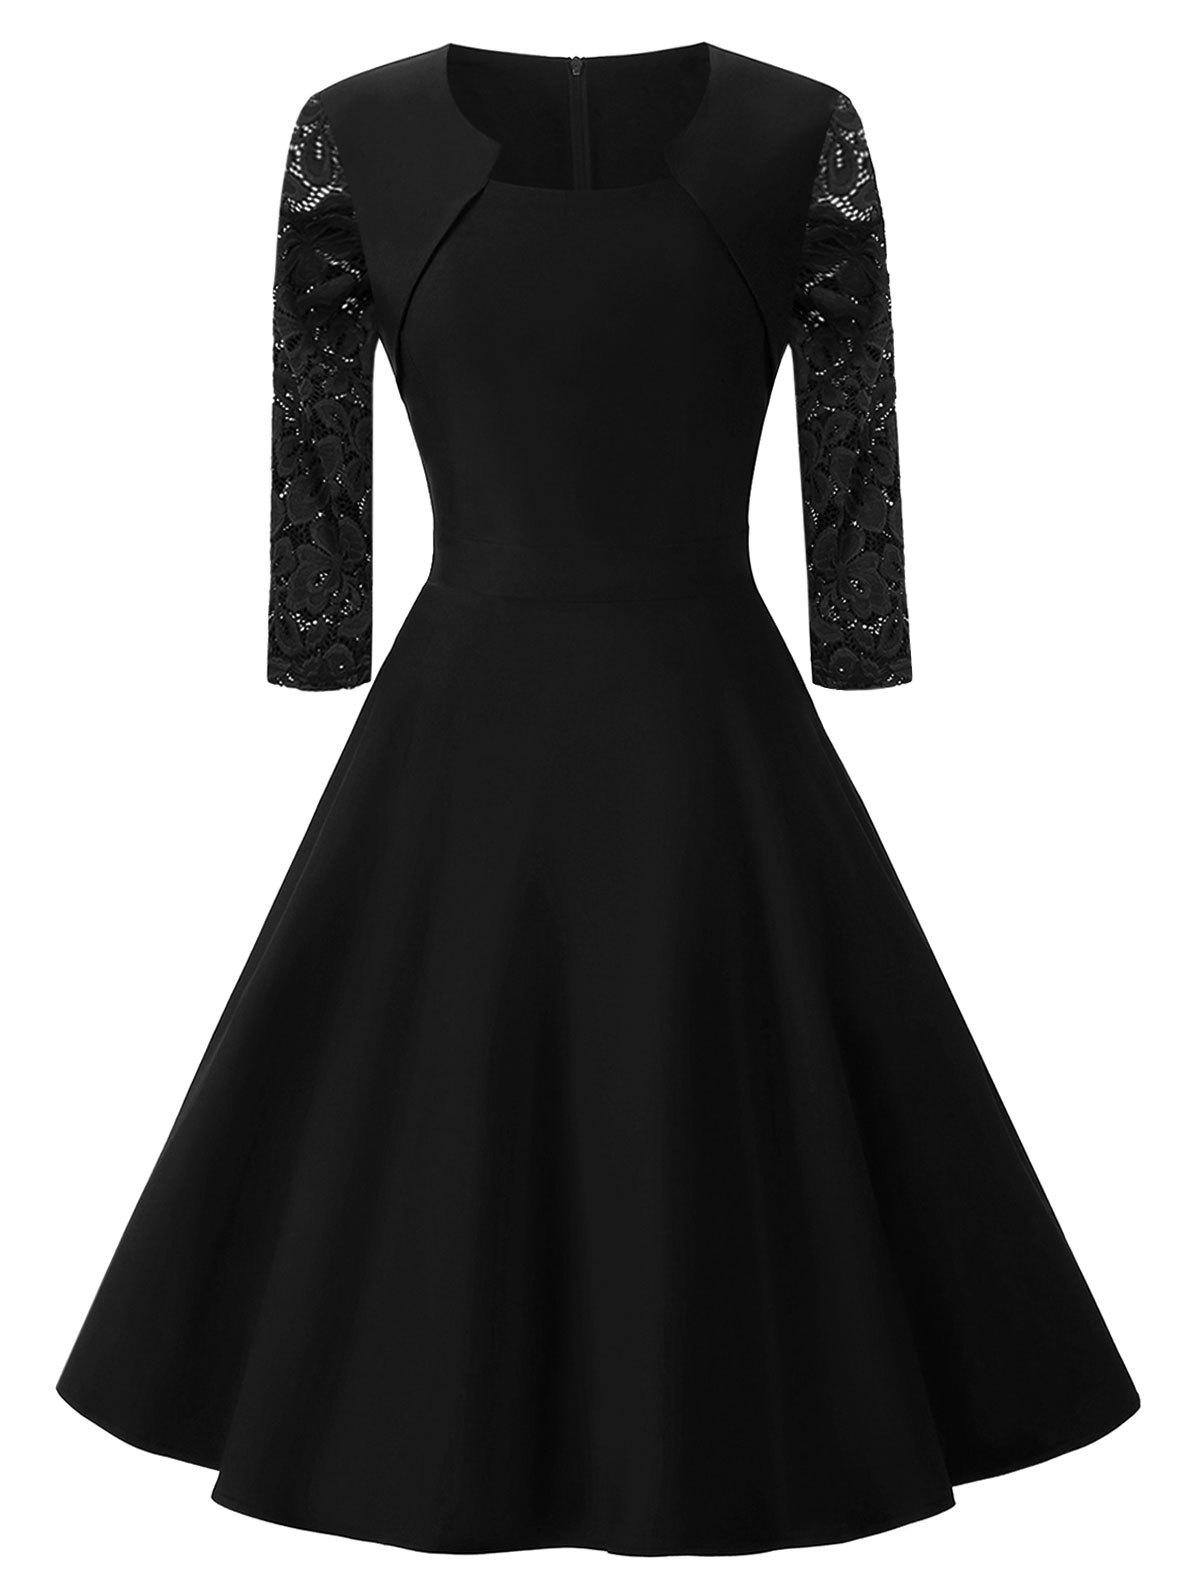 Lace Sleeve Vintage Fit and Flare Dress lace overlay fit and flare dress